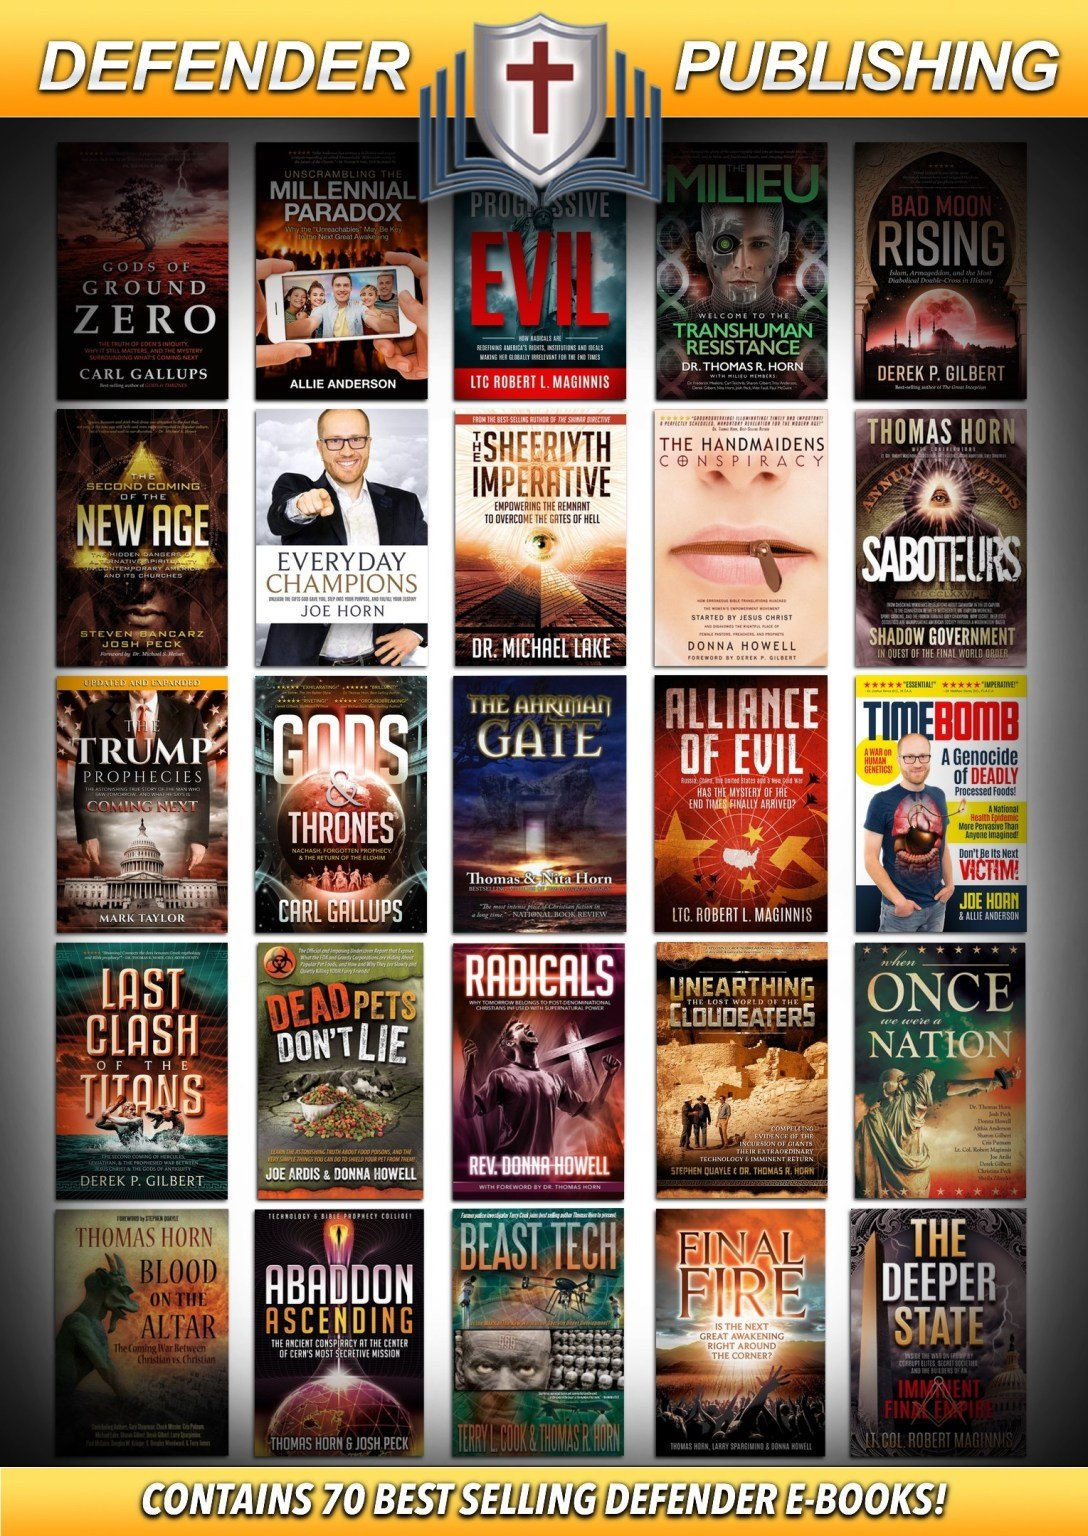 FREE! OVER 70 BEST-SELLING FILMS, BOOKS, & LIBRARIES FOR WHILE YOU SHELTER IN PLACE!